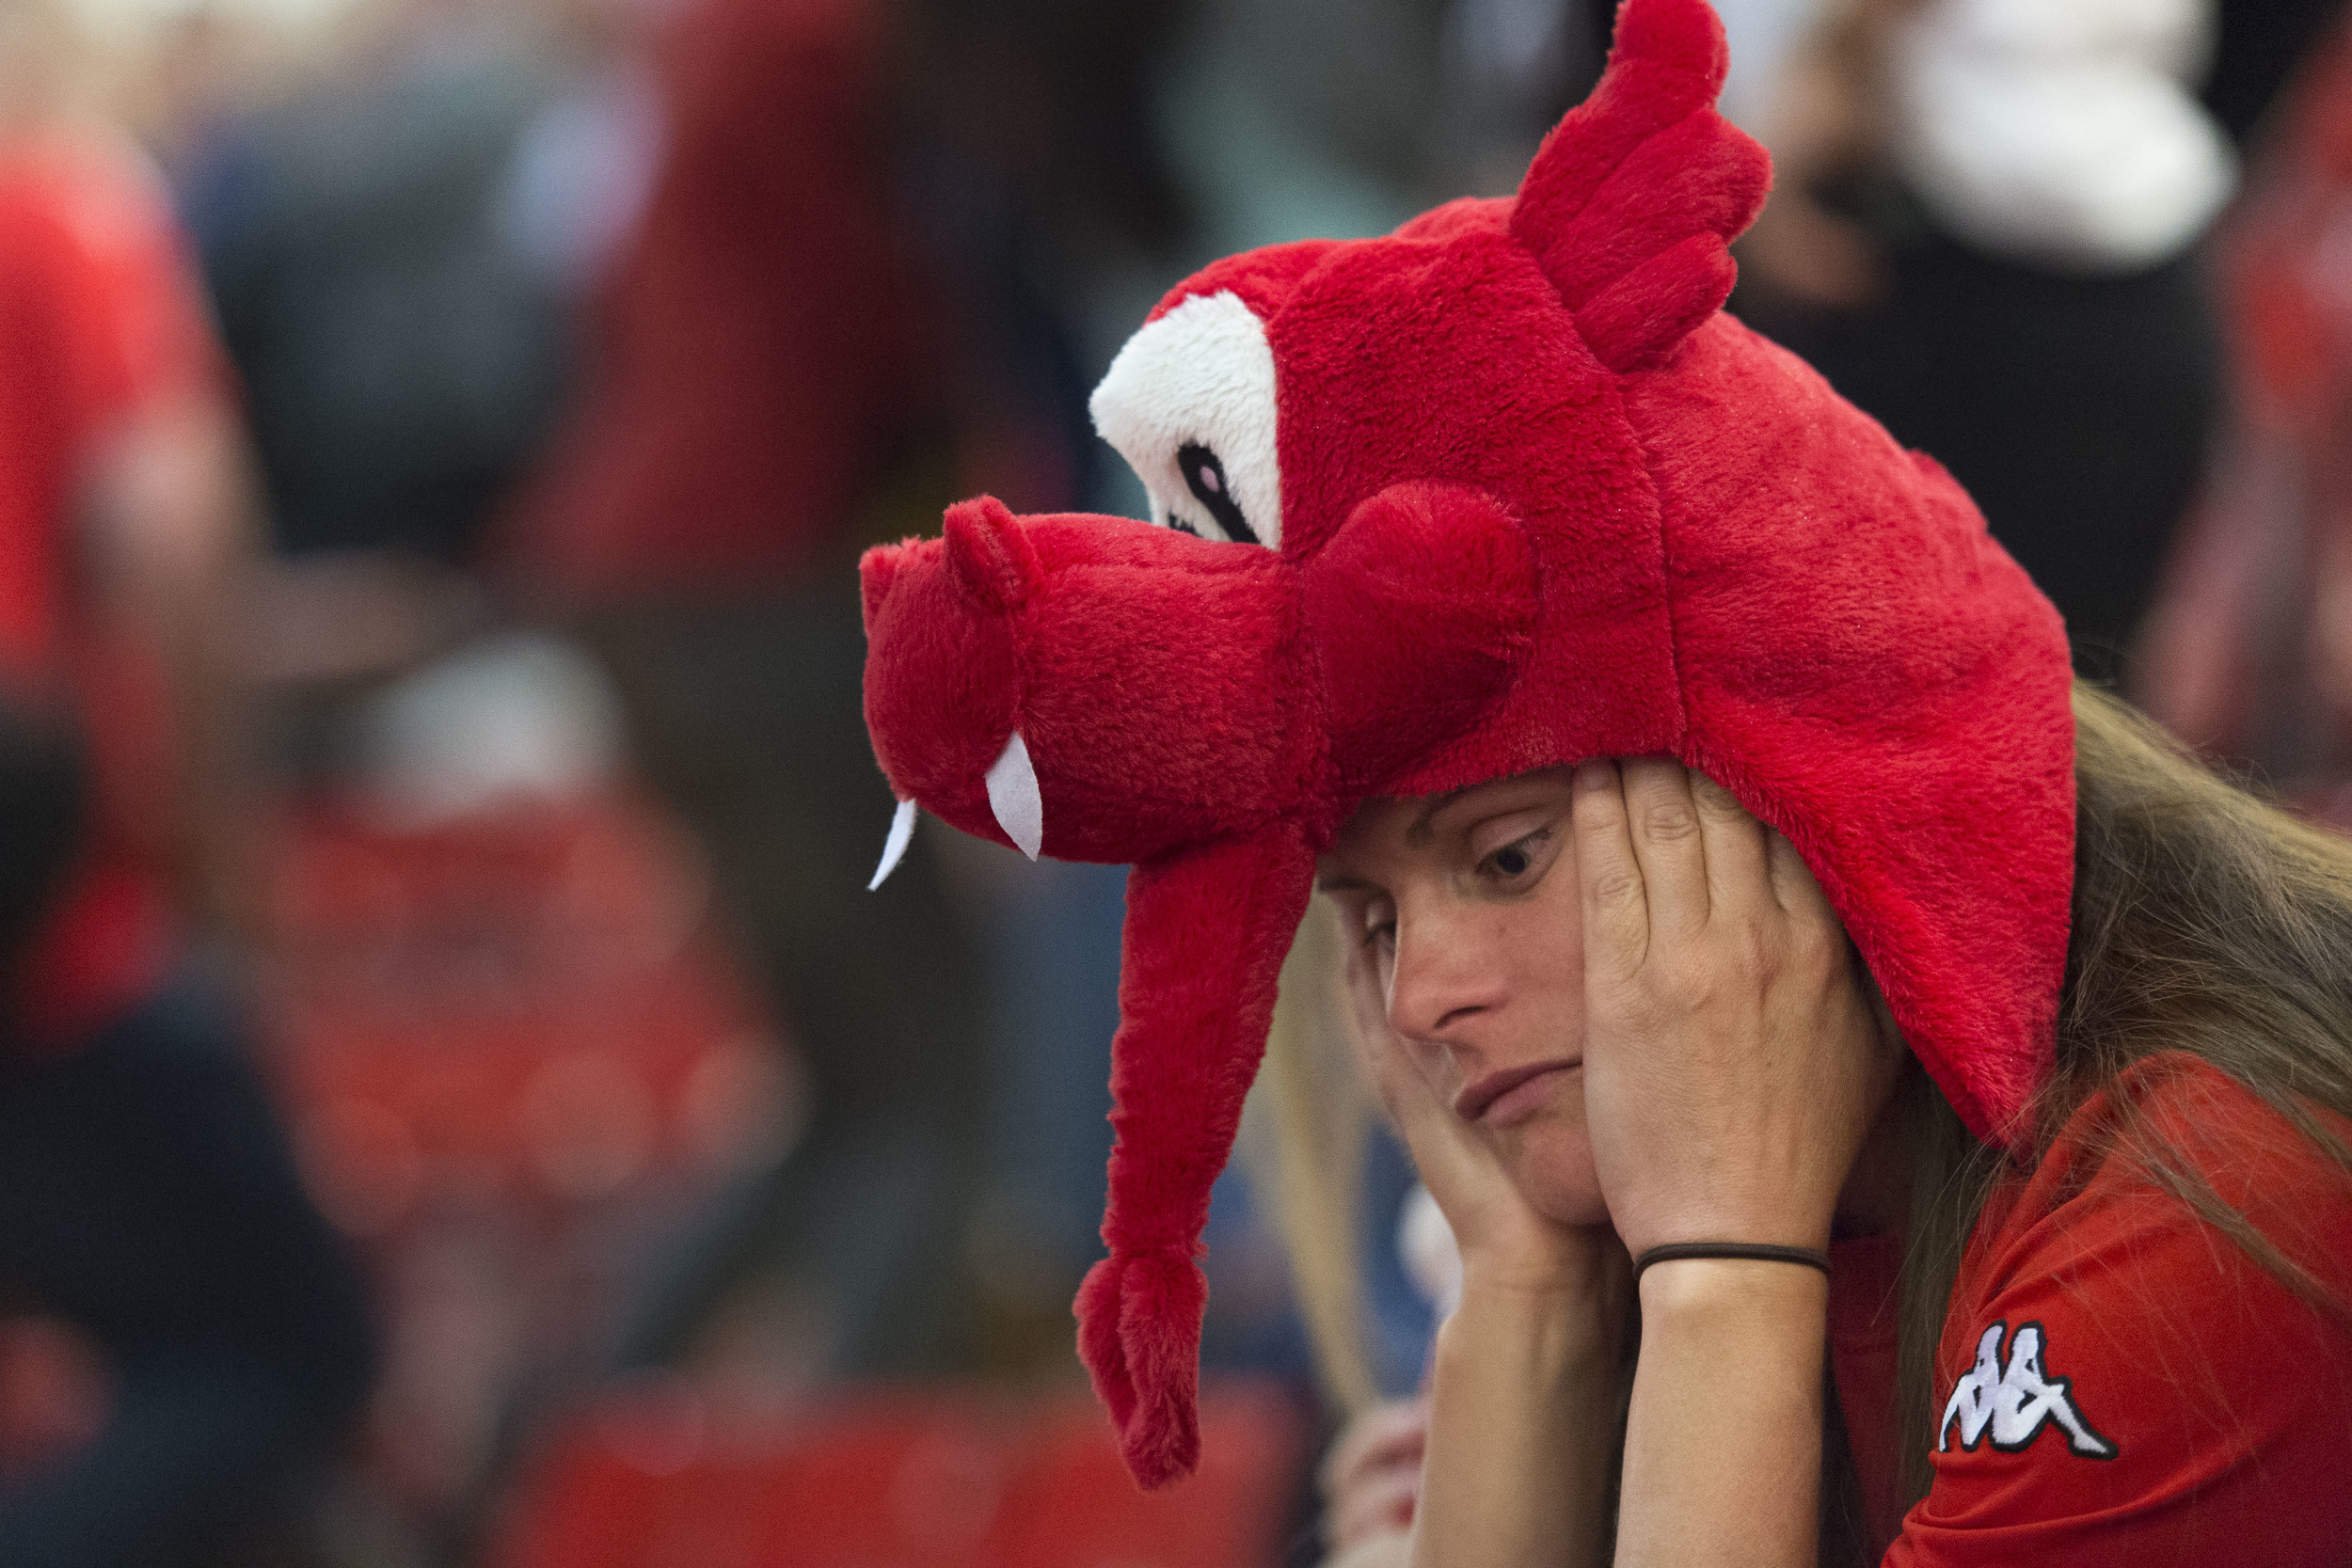 CARDIFF, WALES - JULY 06: A dejected Welsh football fan looks on while watching the Wales v Portugal Euro 2016 semi-final match on a big screen in the Principality Stadium on July 6, 2016 in Cardiff, Wales. Portugal beat Wales 2-0 at Stade de Lyon in France, knocking Wales out of the competition. (Photo by Matthew Horwood)